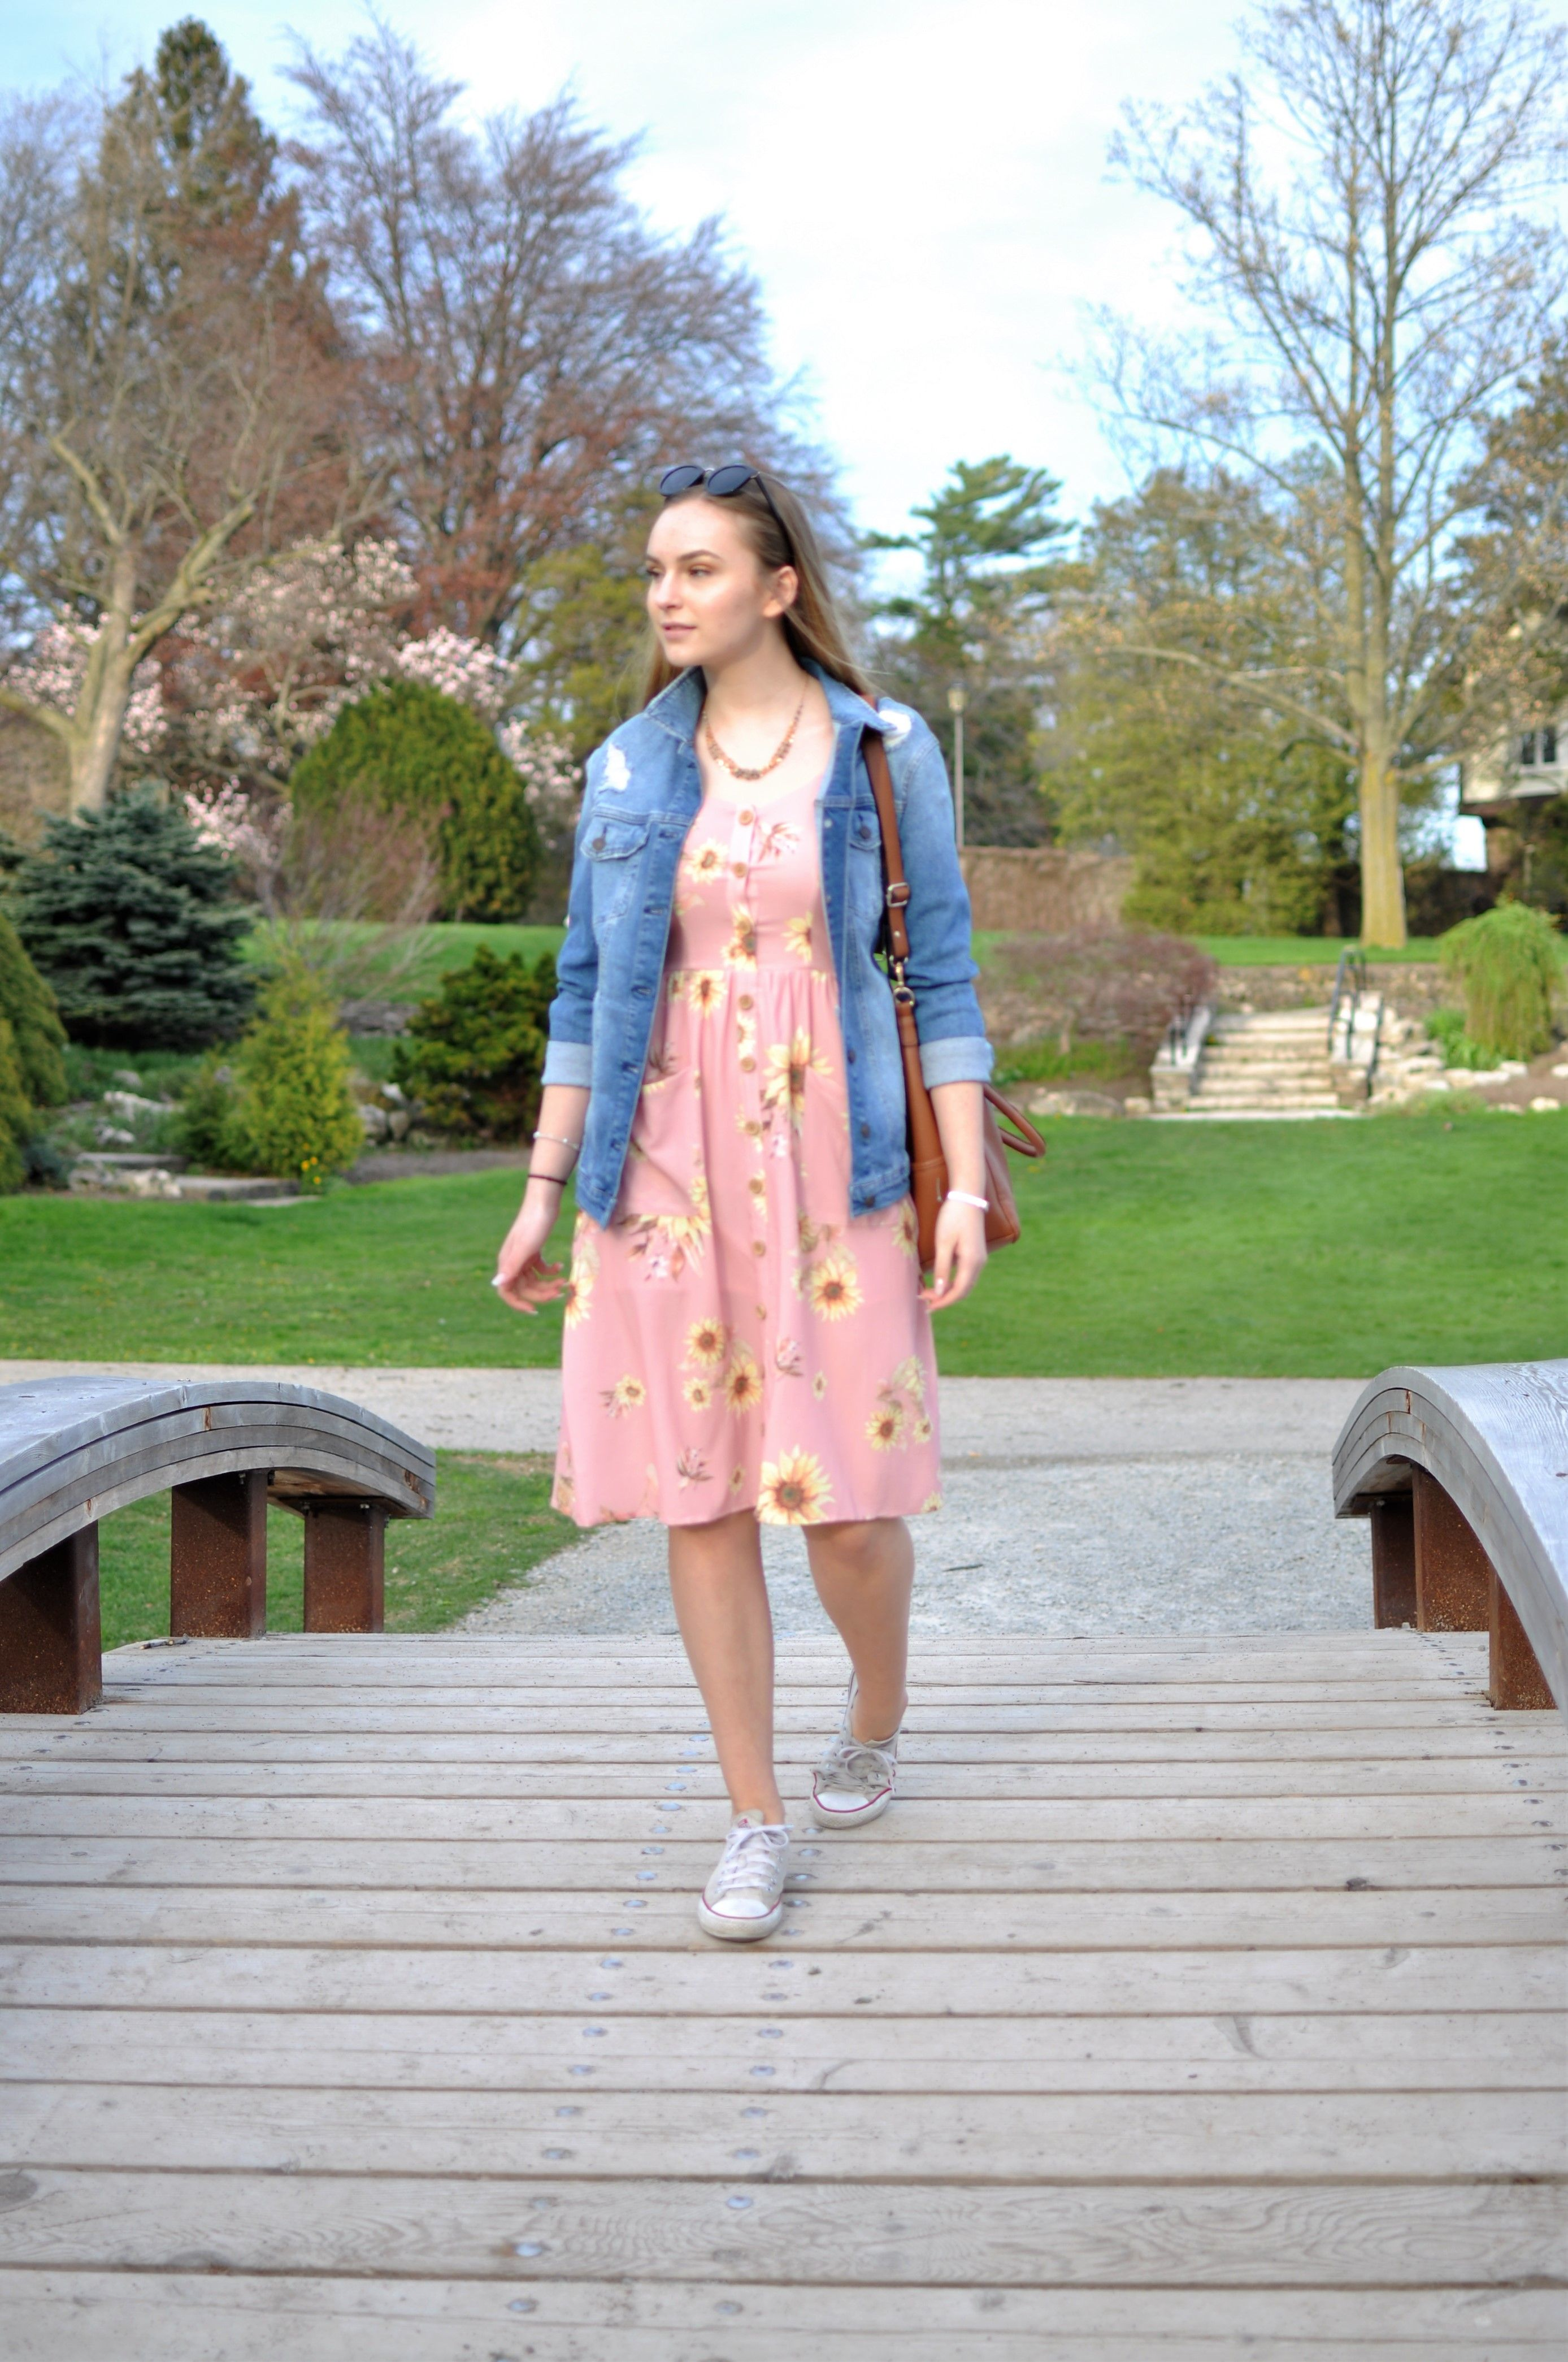 1e5db862803 Denim jackets. Floral dresses. Converse. How to wear a floral dress with  sneakers.